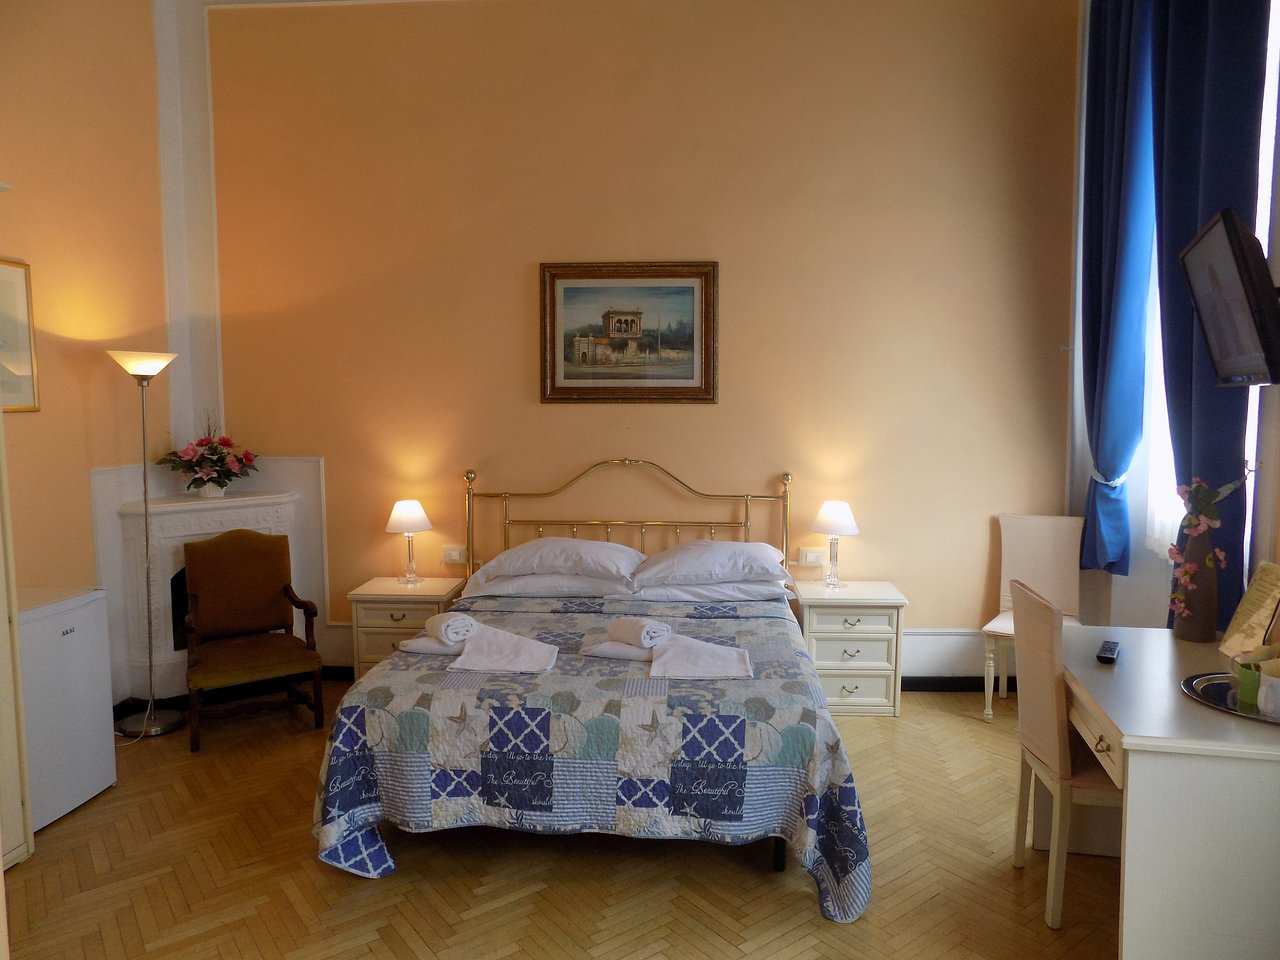 The 10 Best Pitti Florence Bed And Breakfasts 2020 With Prices - Soggiorno Pitti Hotel Florence